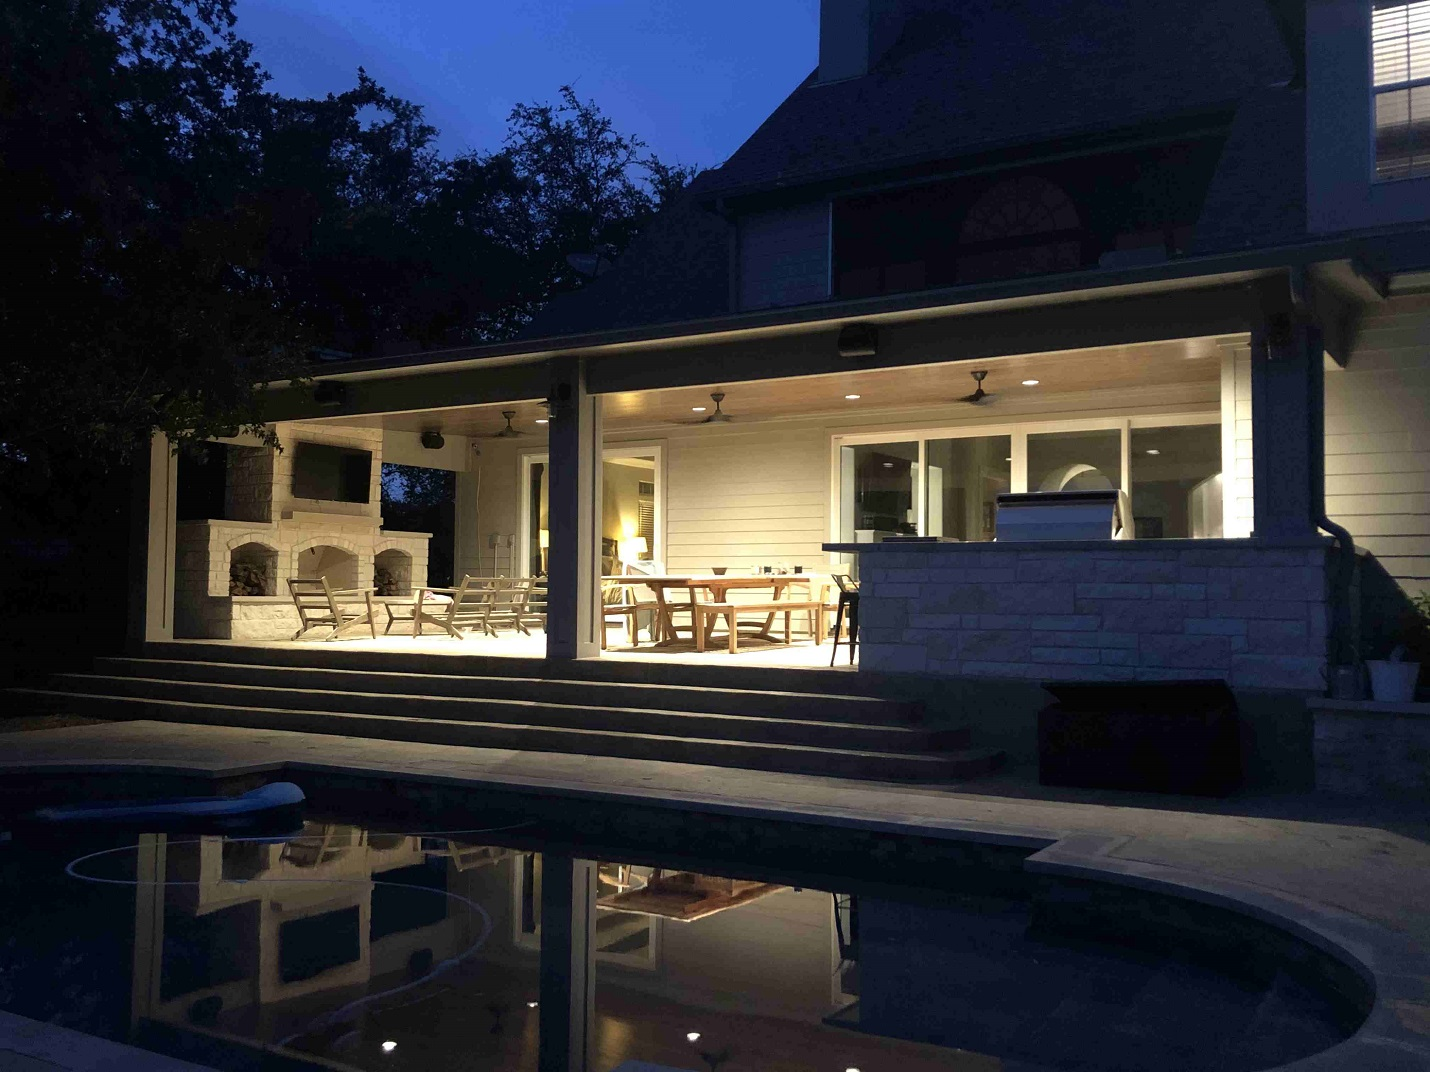 Amazing-shot-of-new-covered-patio-at-night